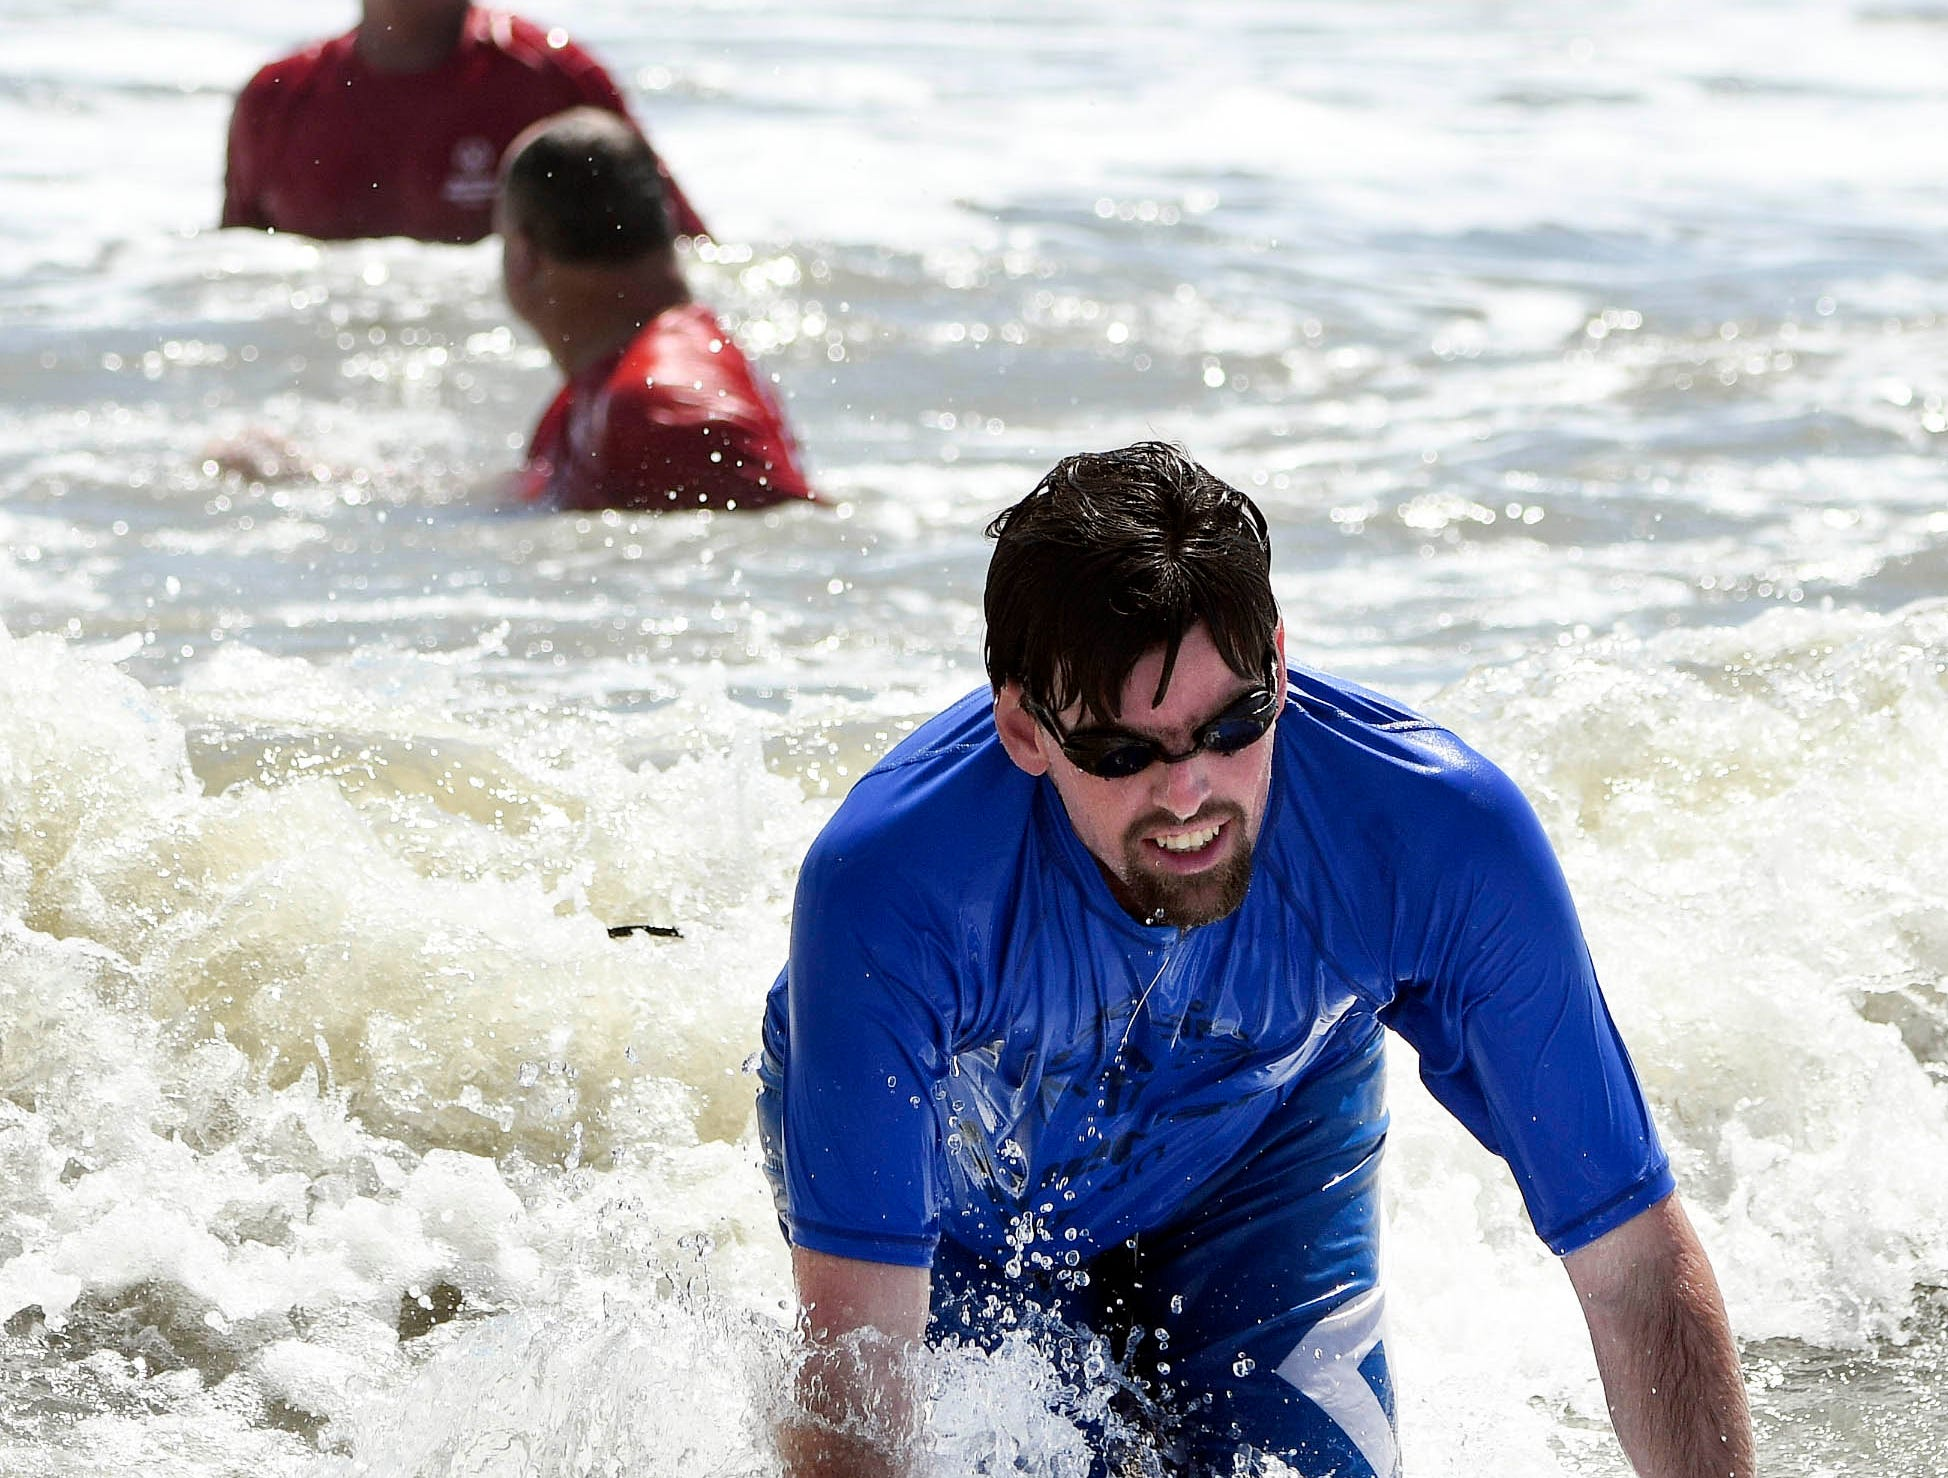 Bryan Padron rides a wave during the Special Olympics Florida spring surfing festival Saturday at Shepard Park in Cocoa Beach.